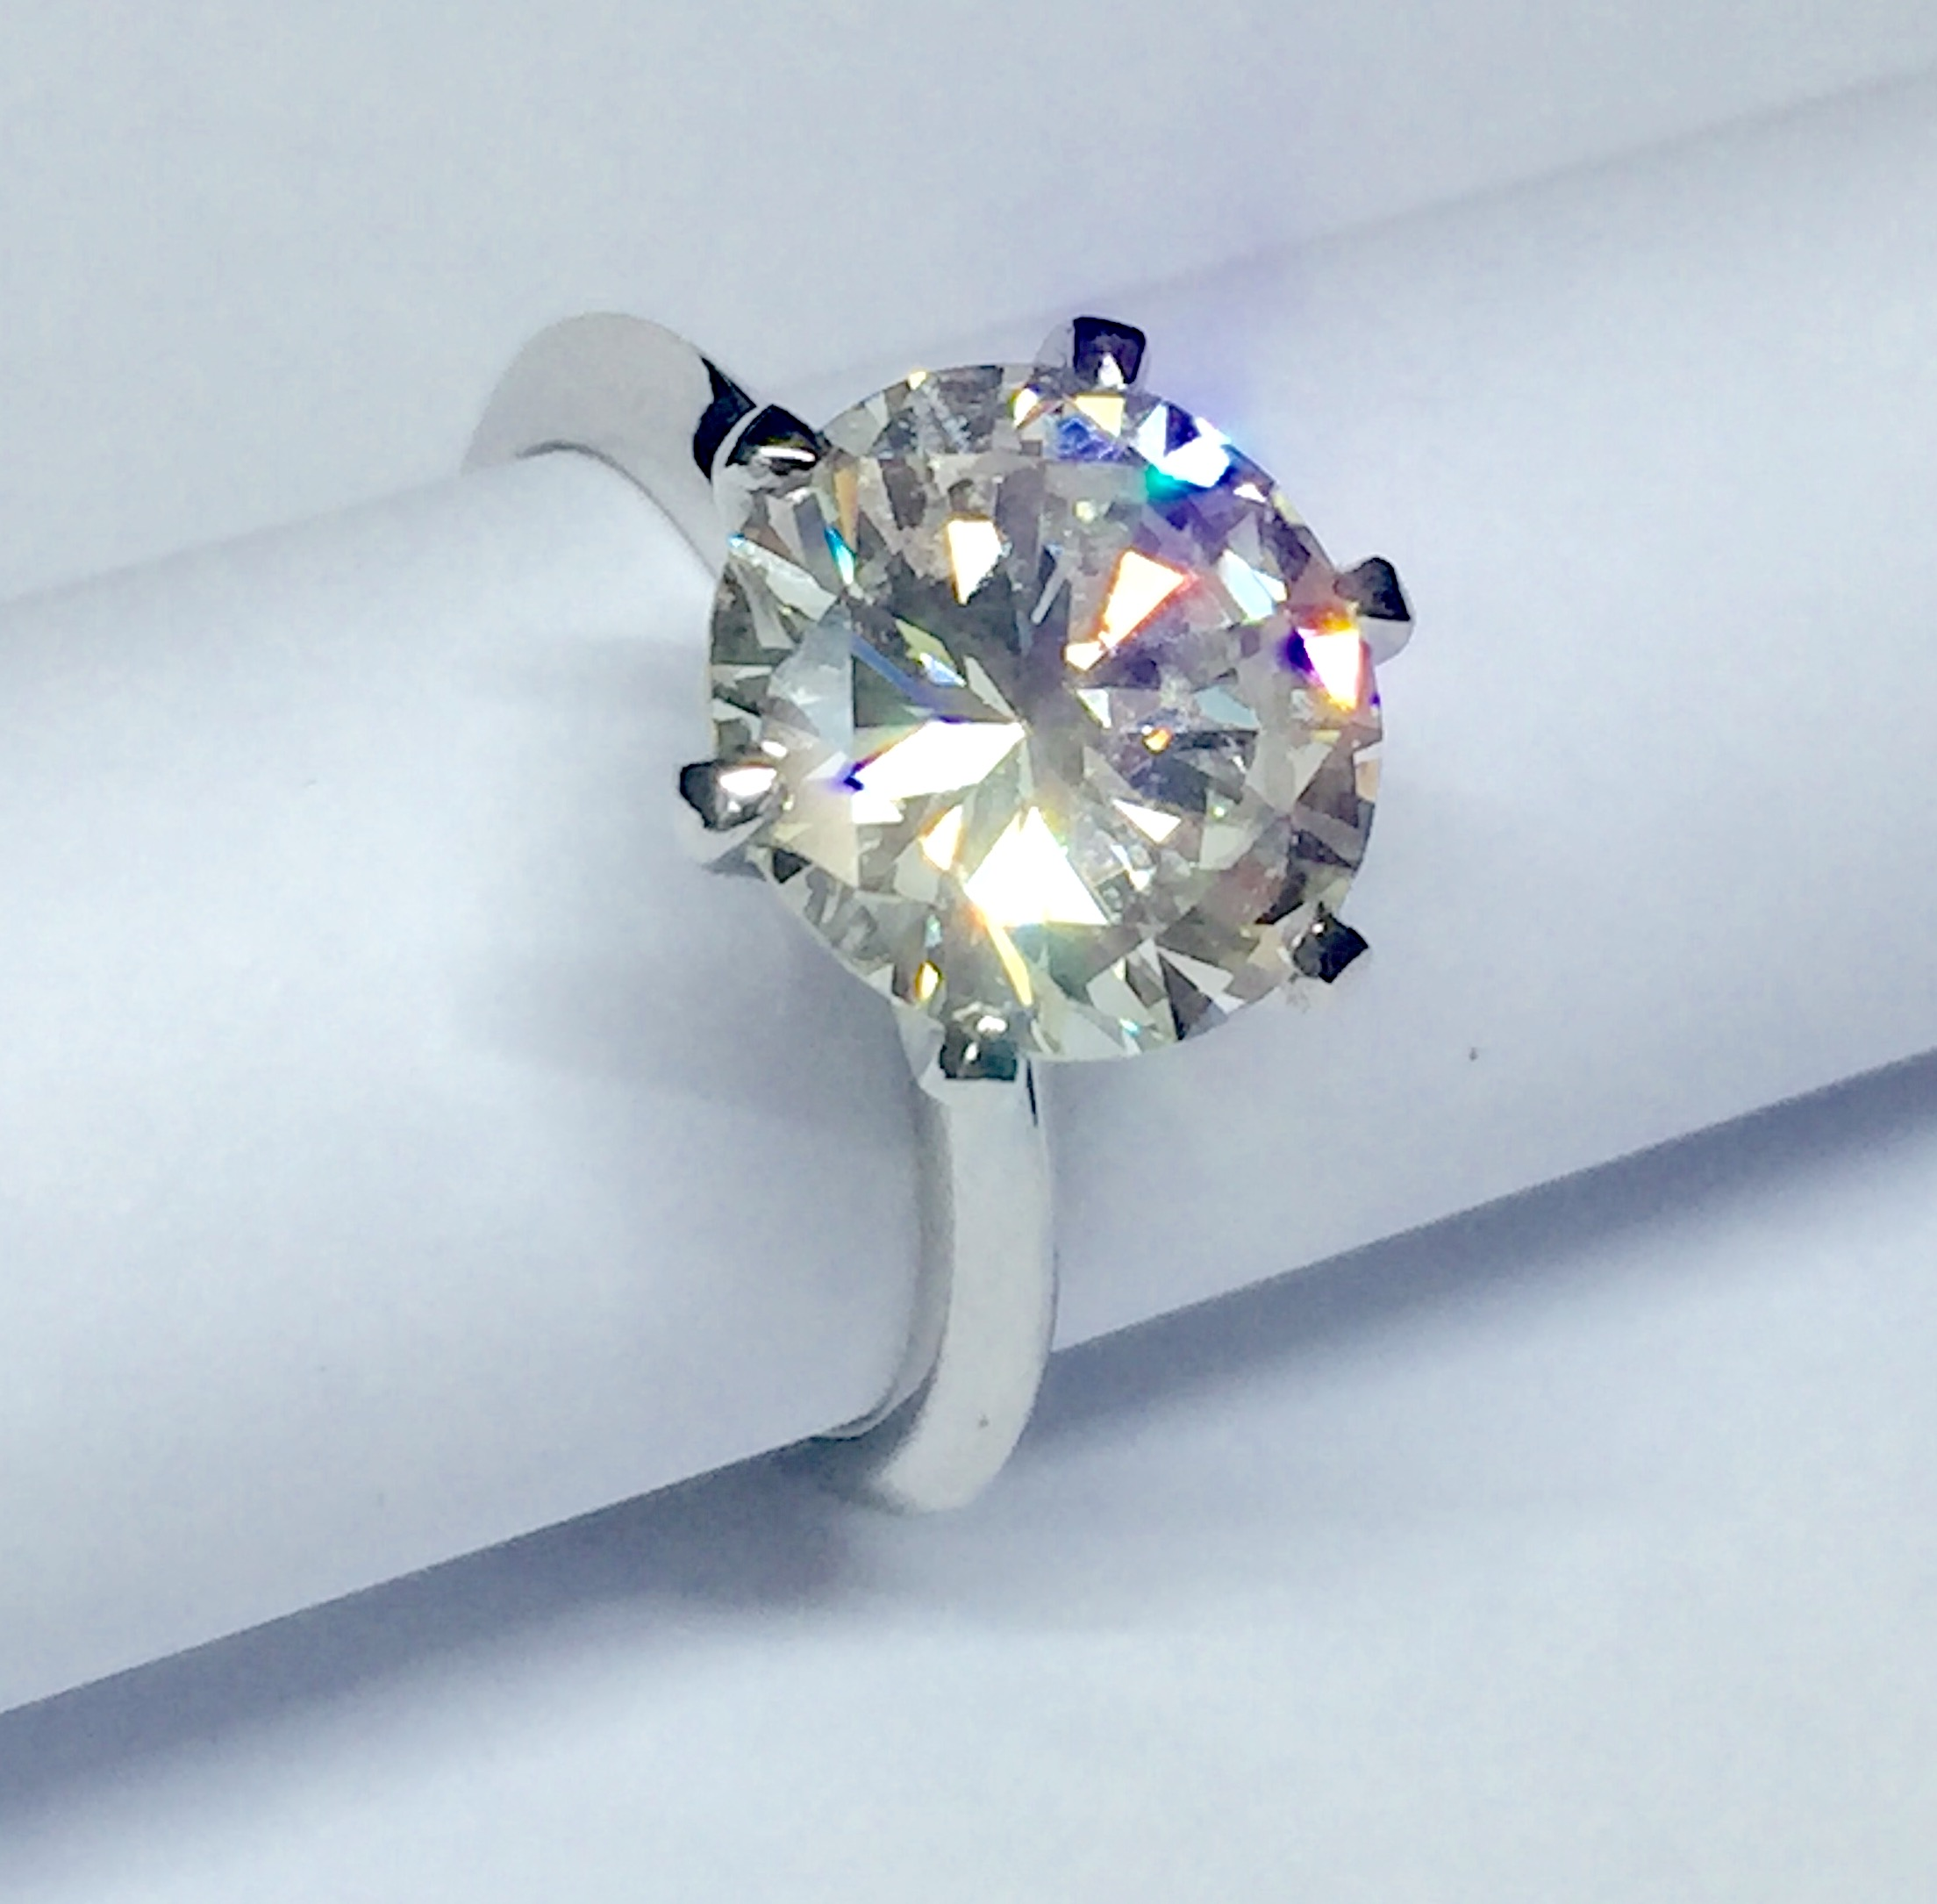 Copy of 4ct brilliant cut diamond solitaire ring. Made in Chichester, England.